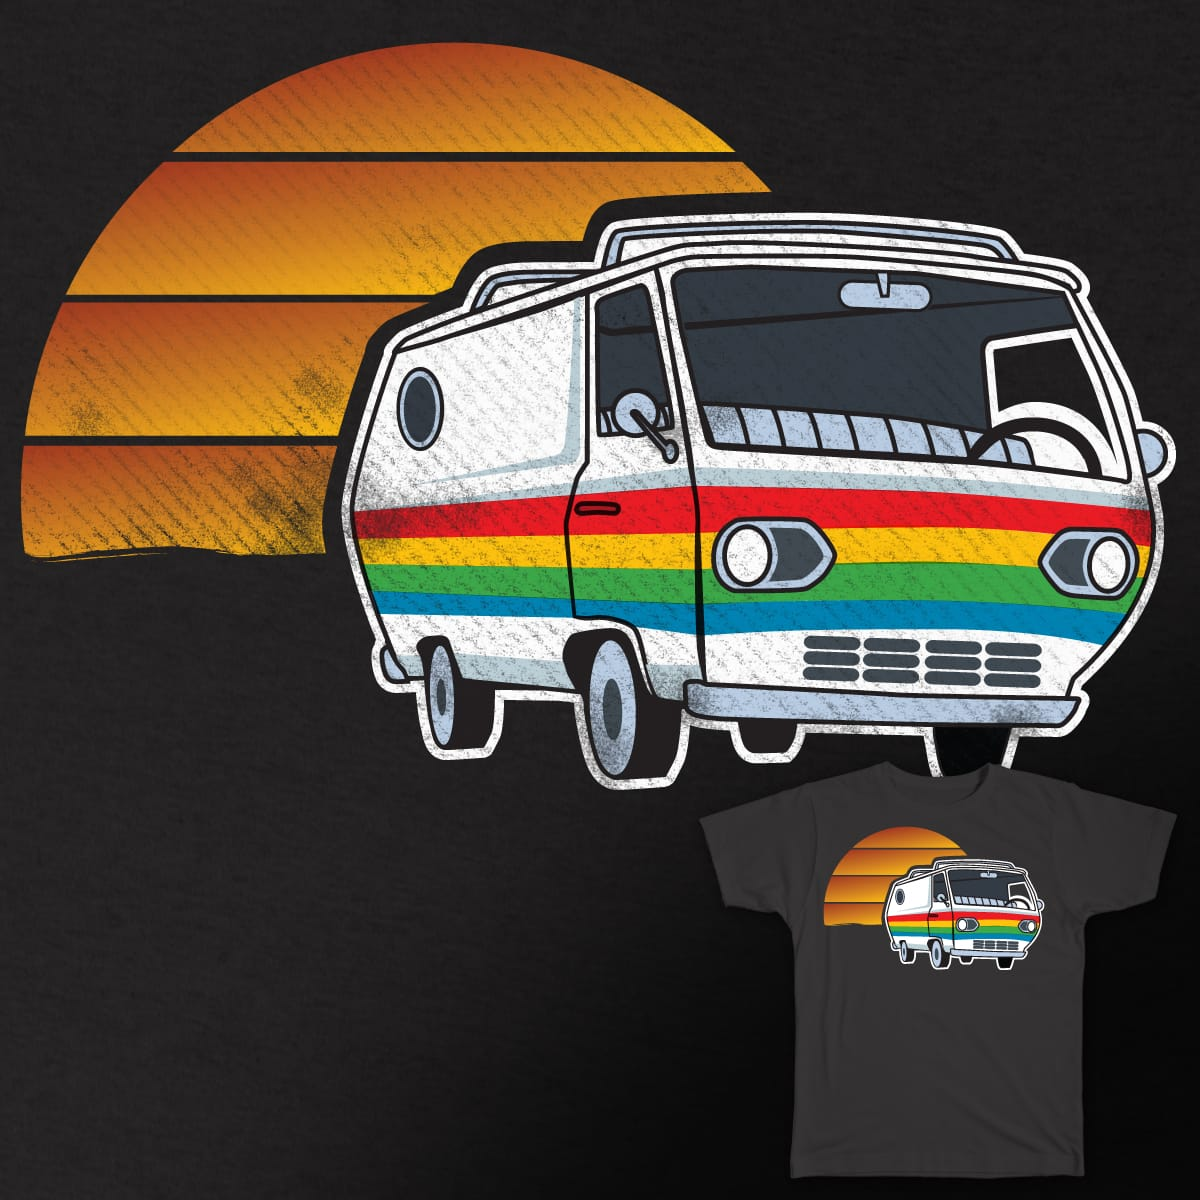 Road Trip! by Cfmenz on Threadless